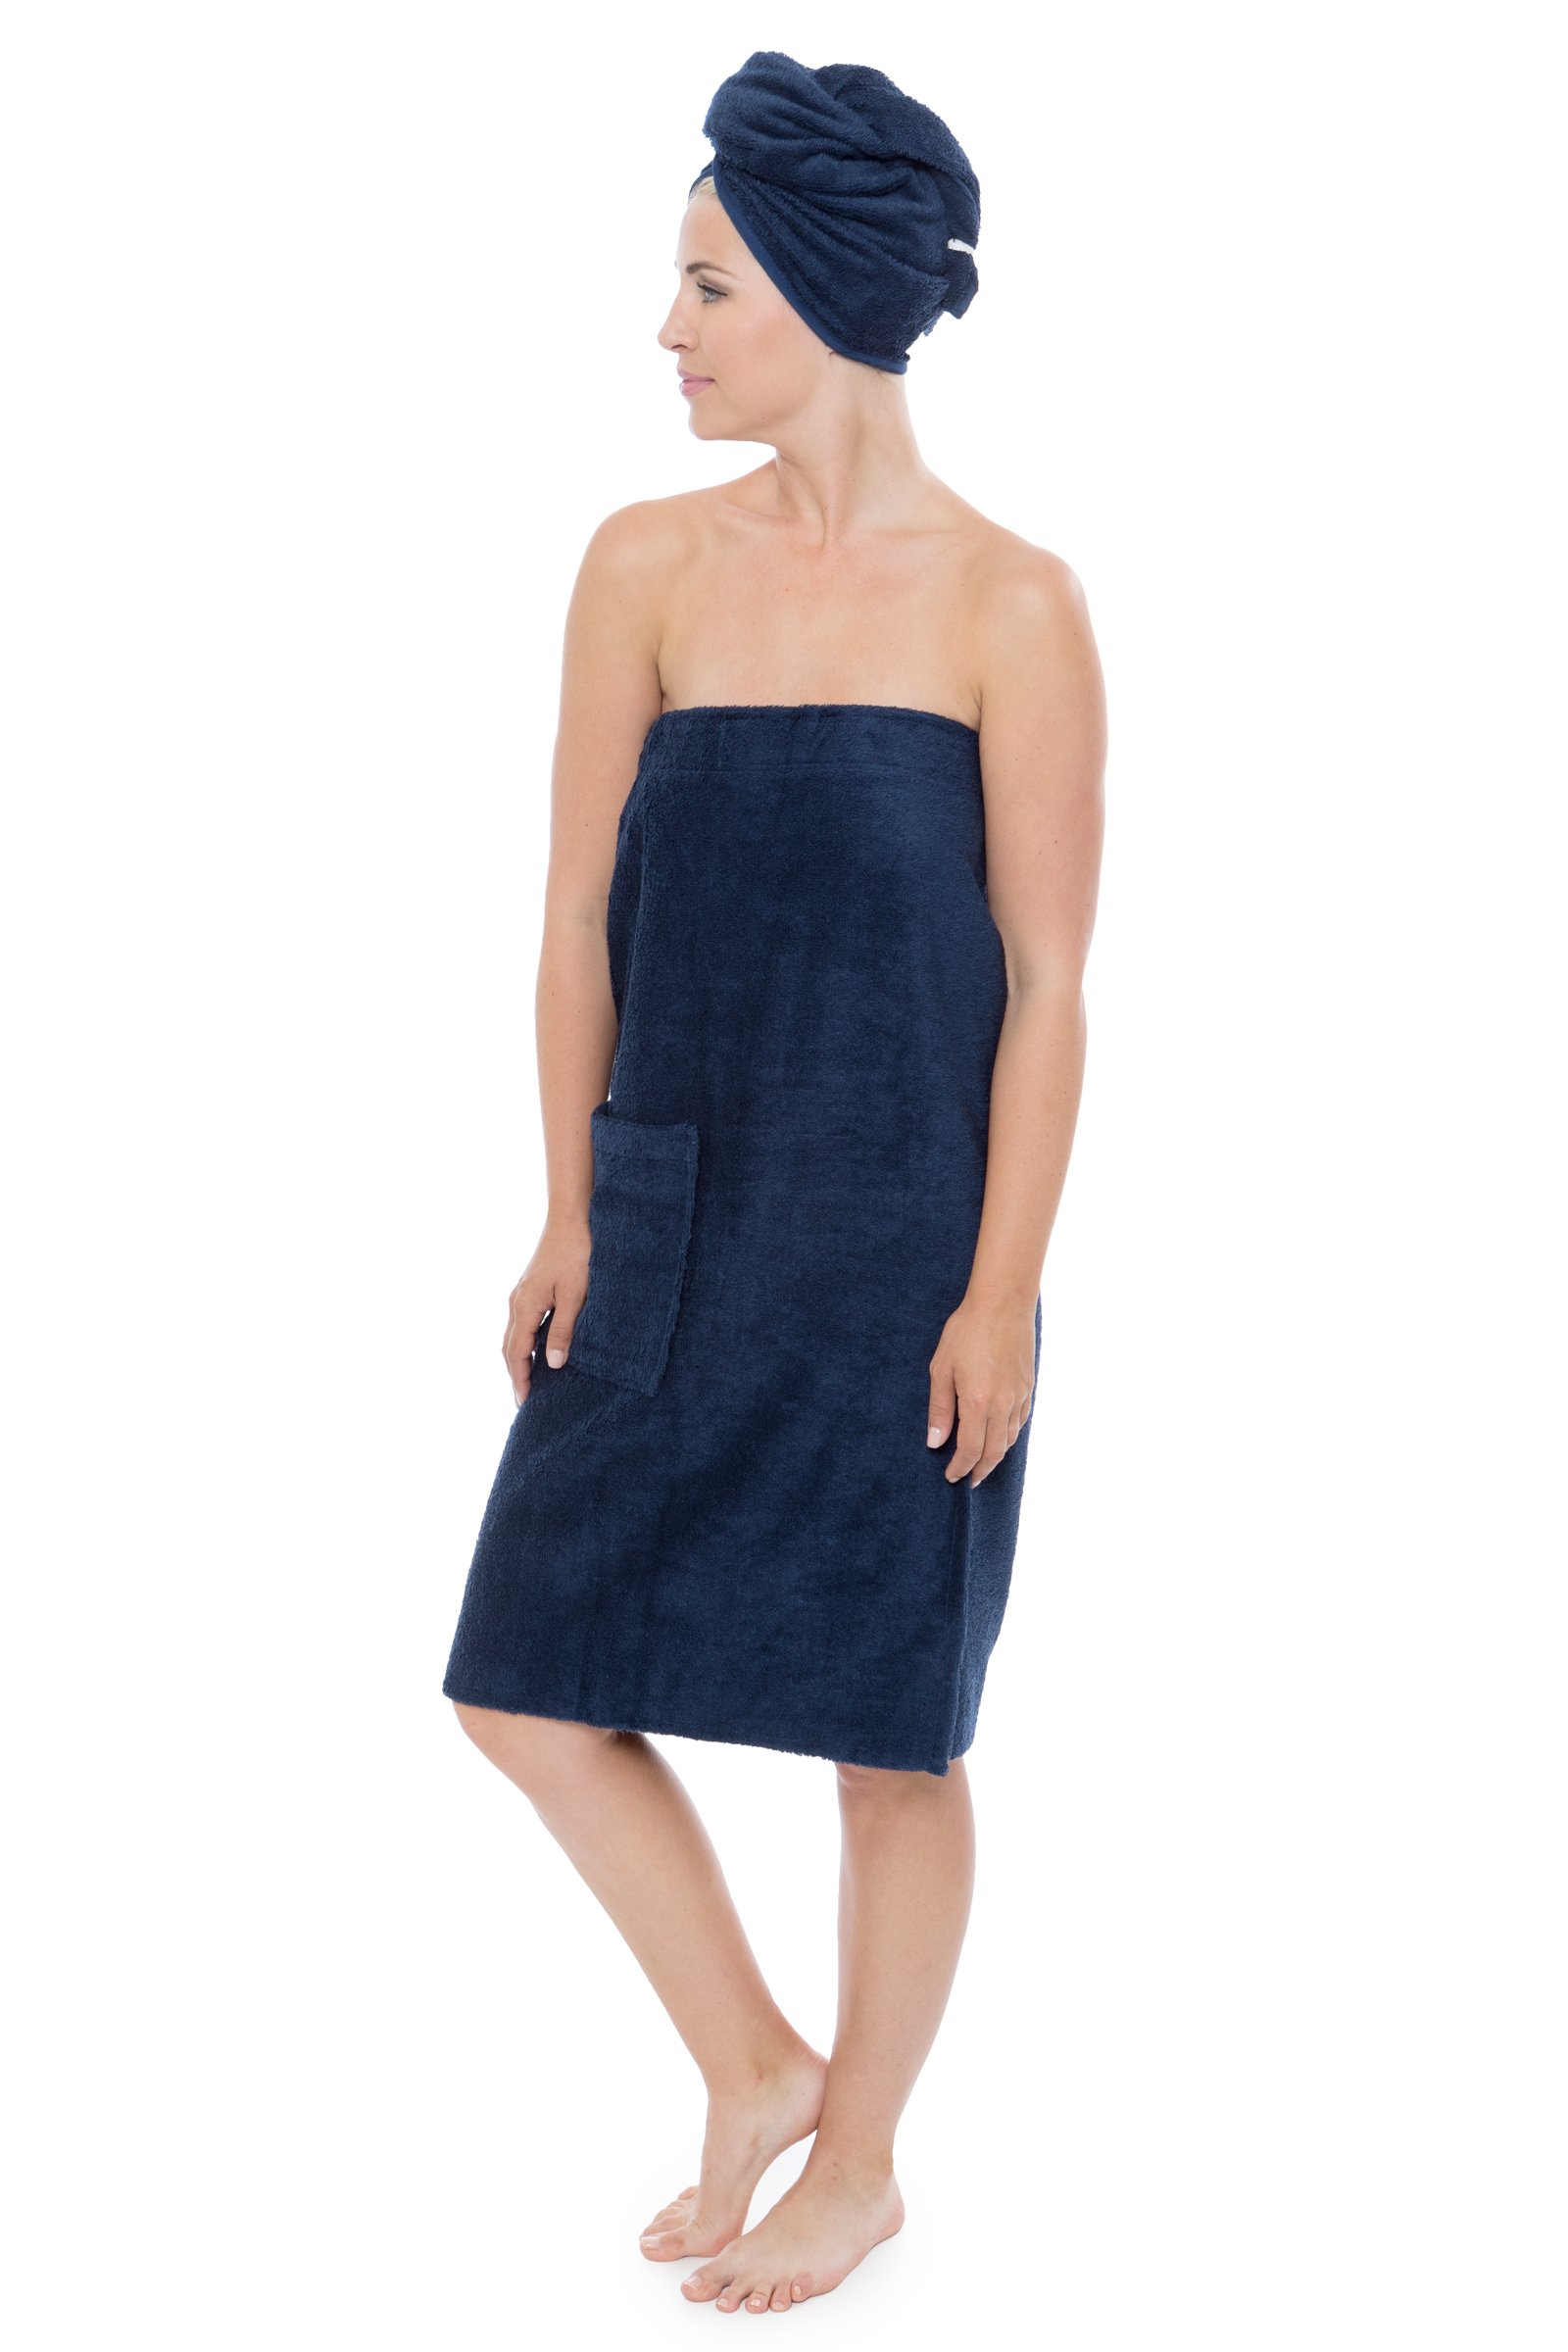 Women's Towel Wrap - Bamboo Viscose Spa Wrap Set by Texere (The Waterfall, Midnight Blue, Large/X-Large) Soft Cozy Spa Wrap with Hair Towel for Ladies WB0103-MID-LXL